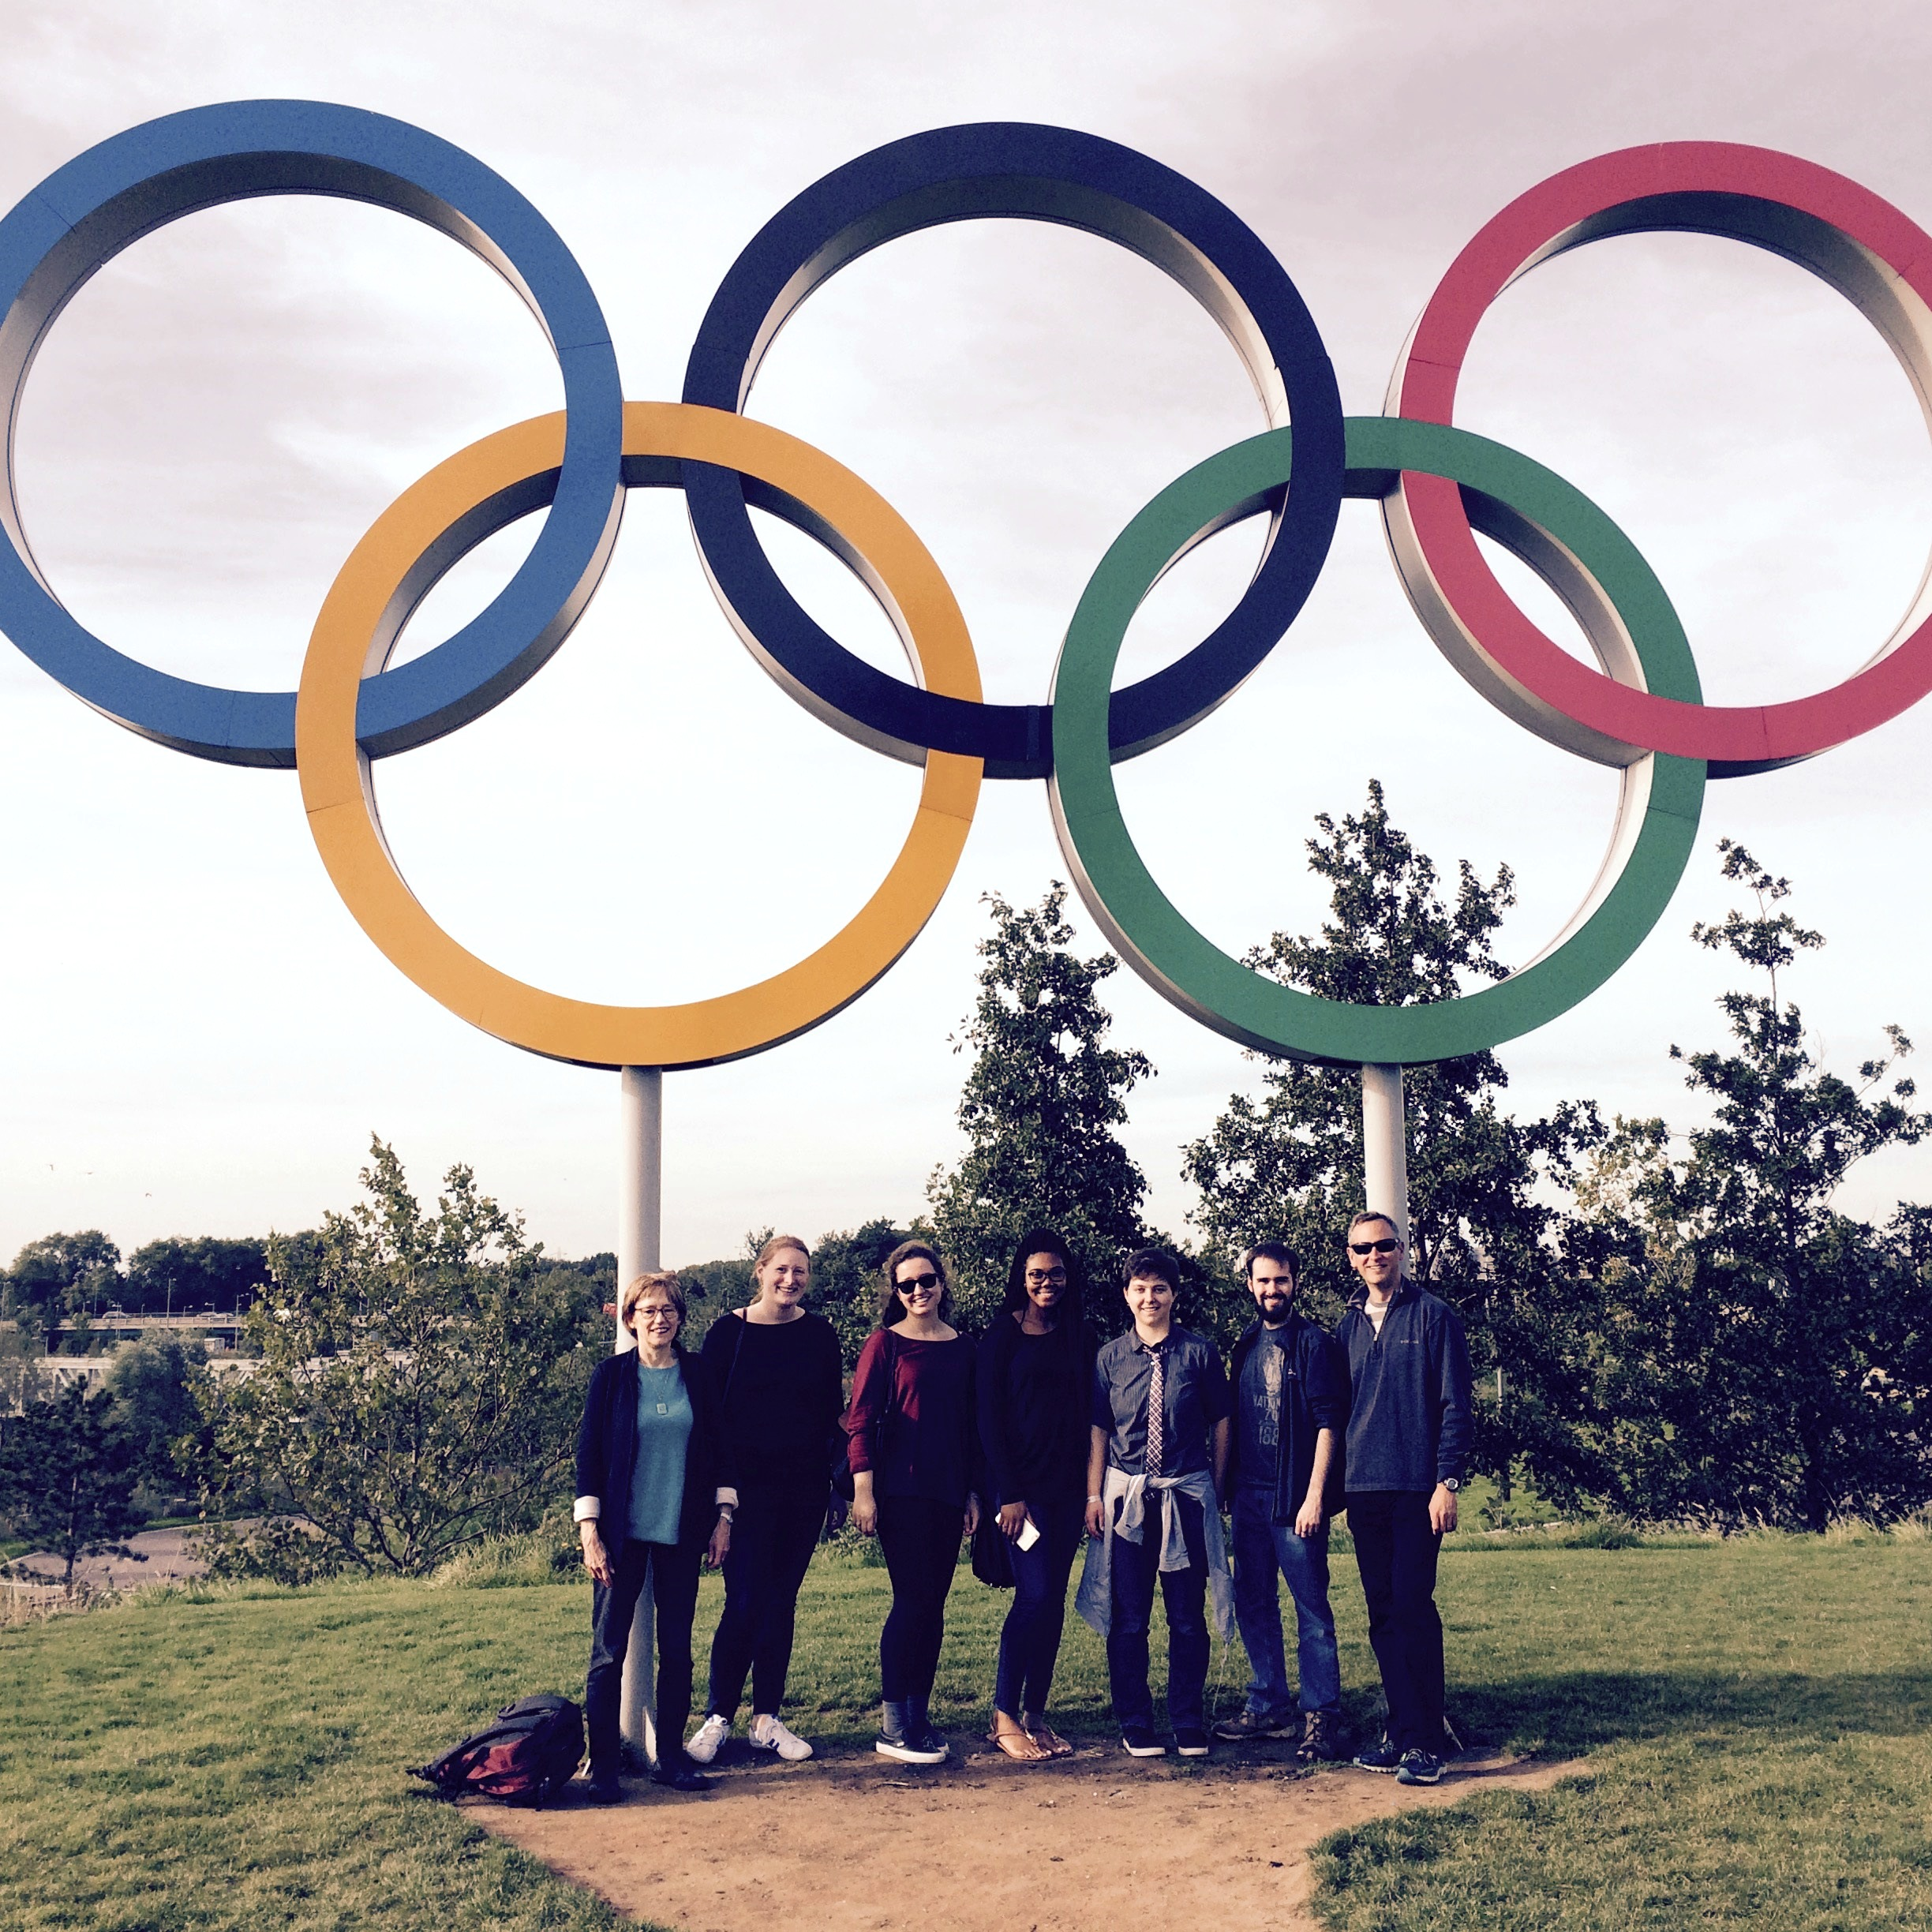 Group of students standing under Olympic rings